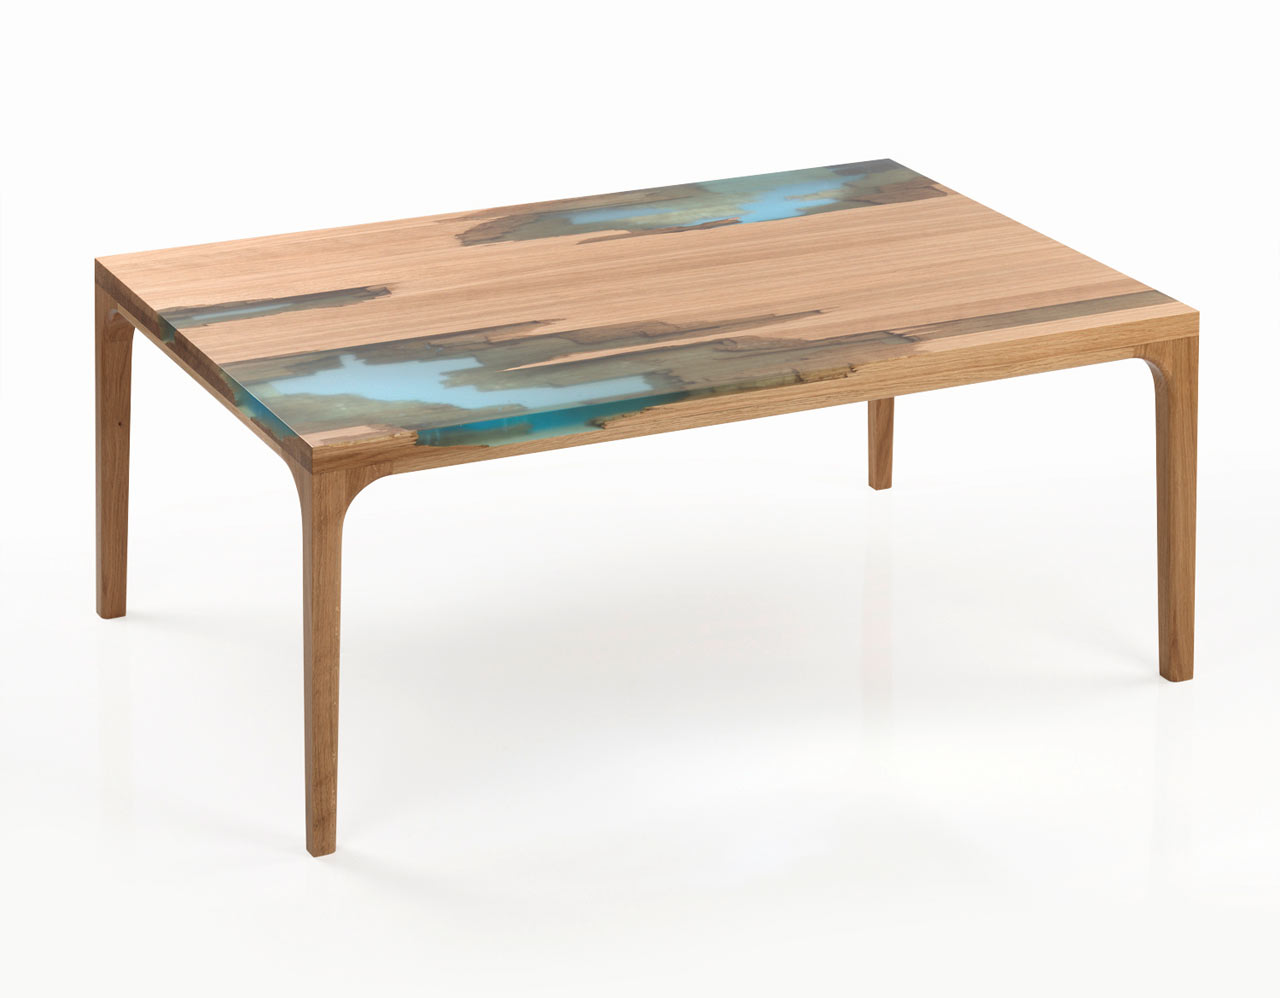 Wood And Resin Furniture Inspired By Self-Healing Trees